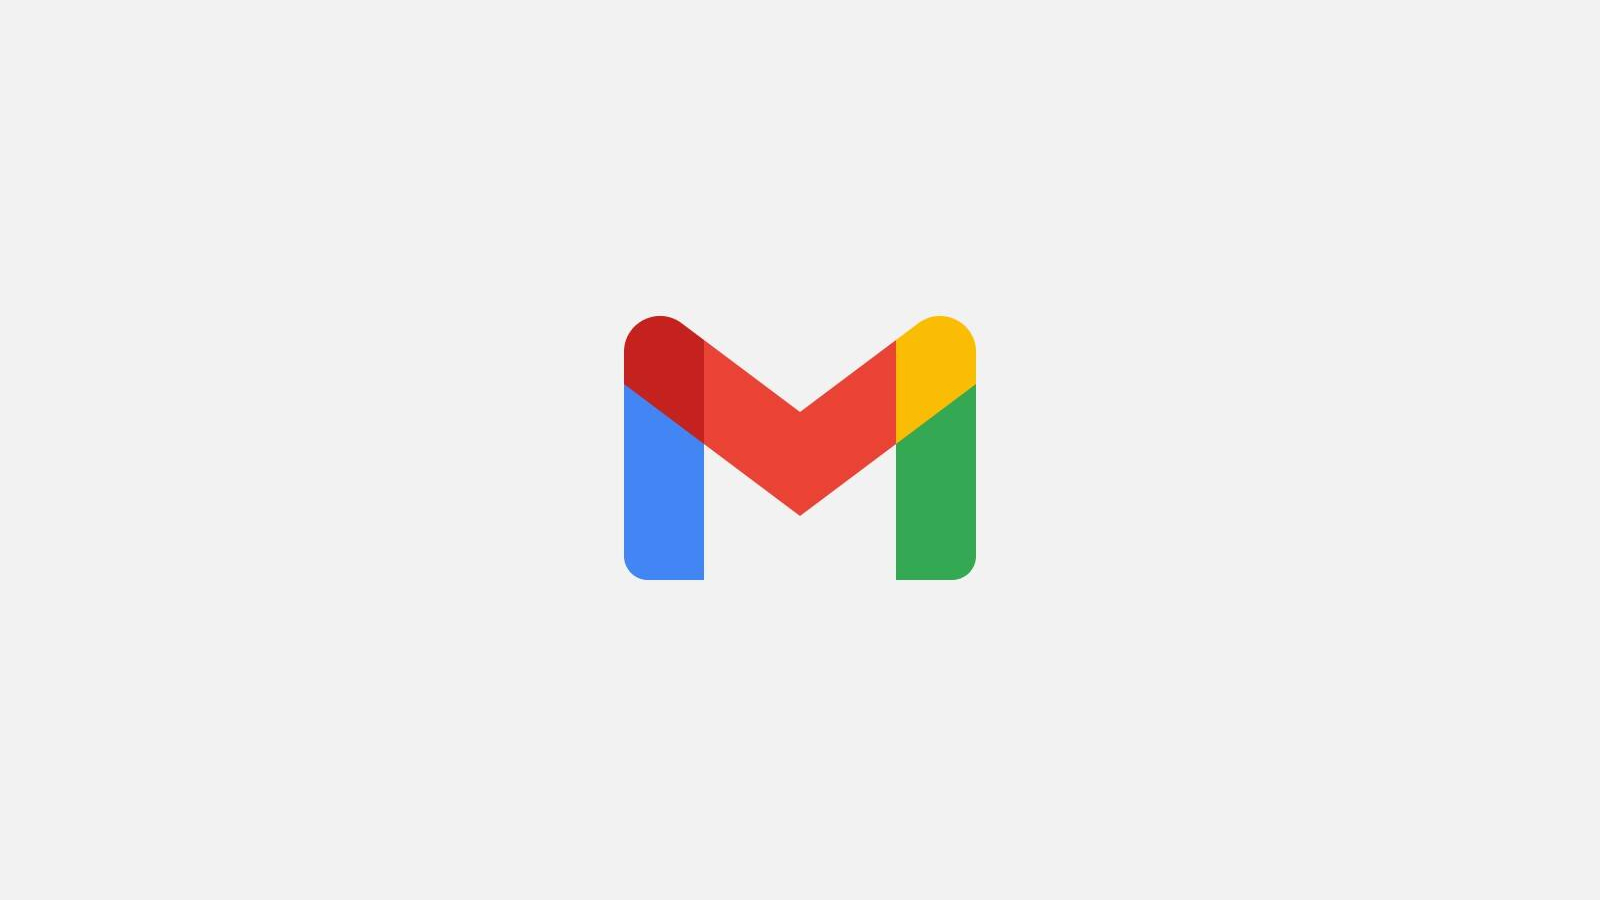 Gmail still doesn't have a proper dark theme on the web, but it points to a larger issue